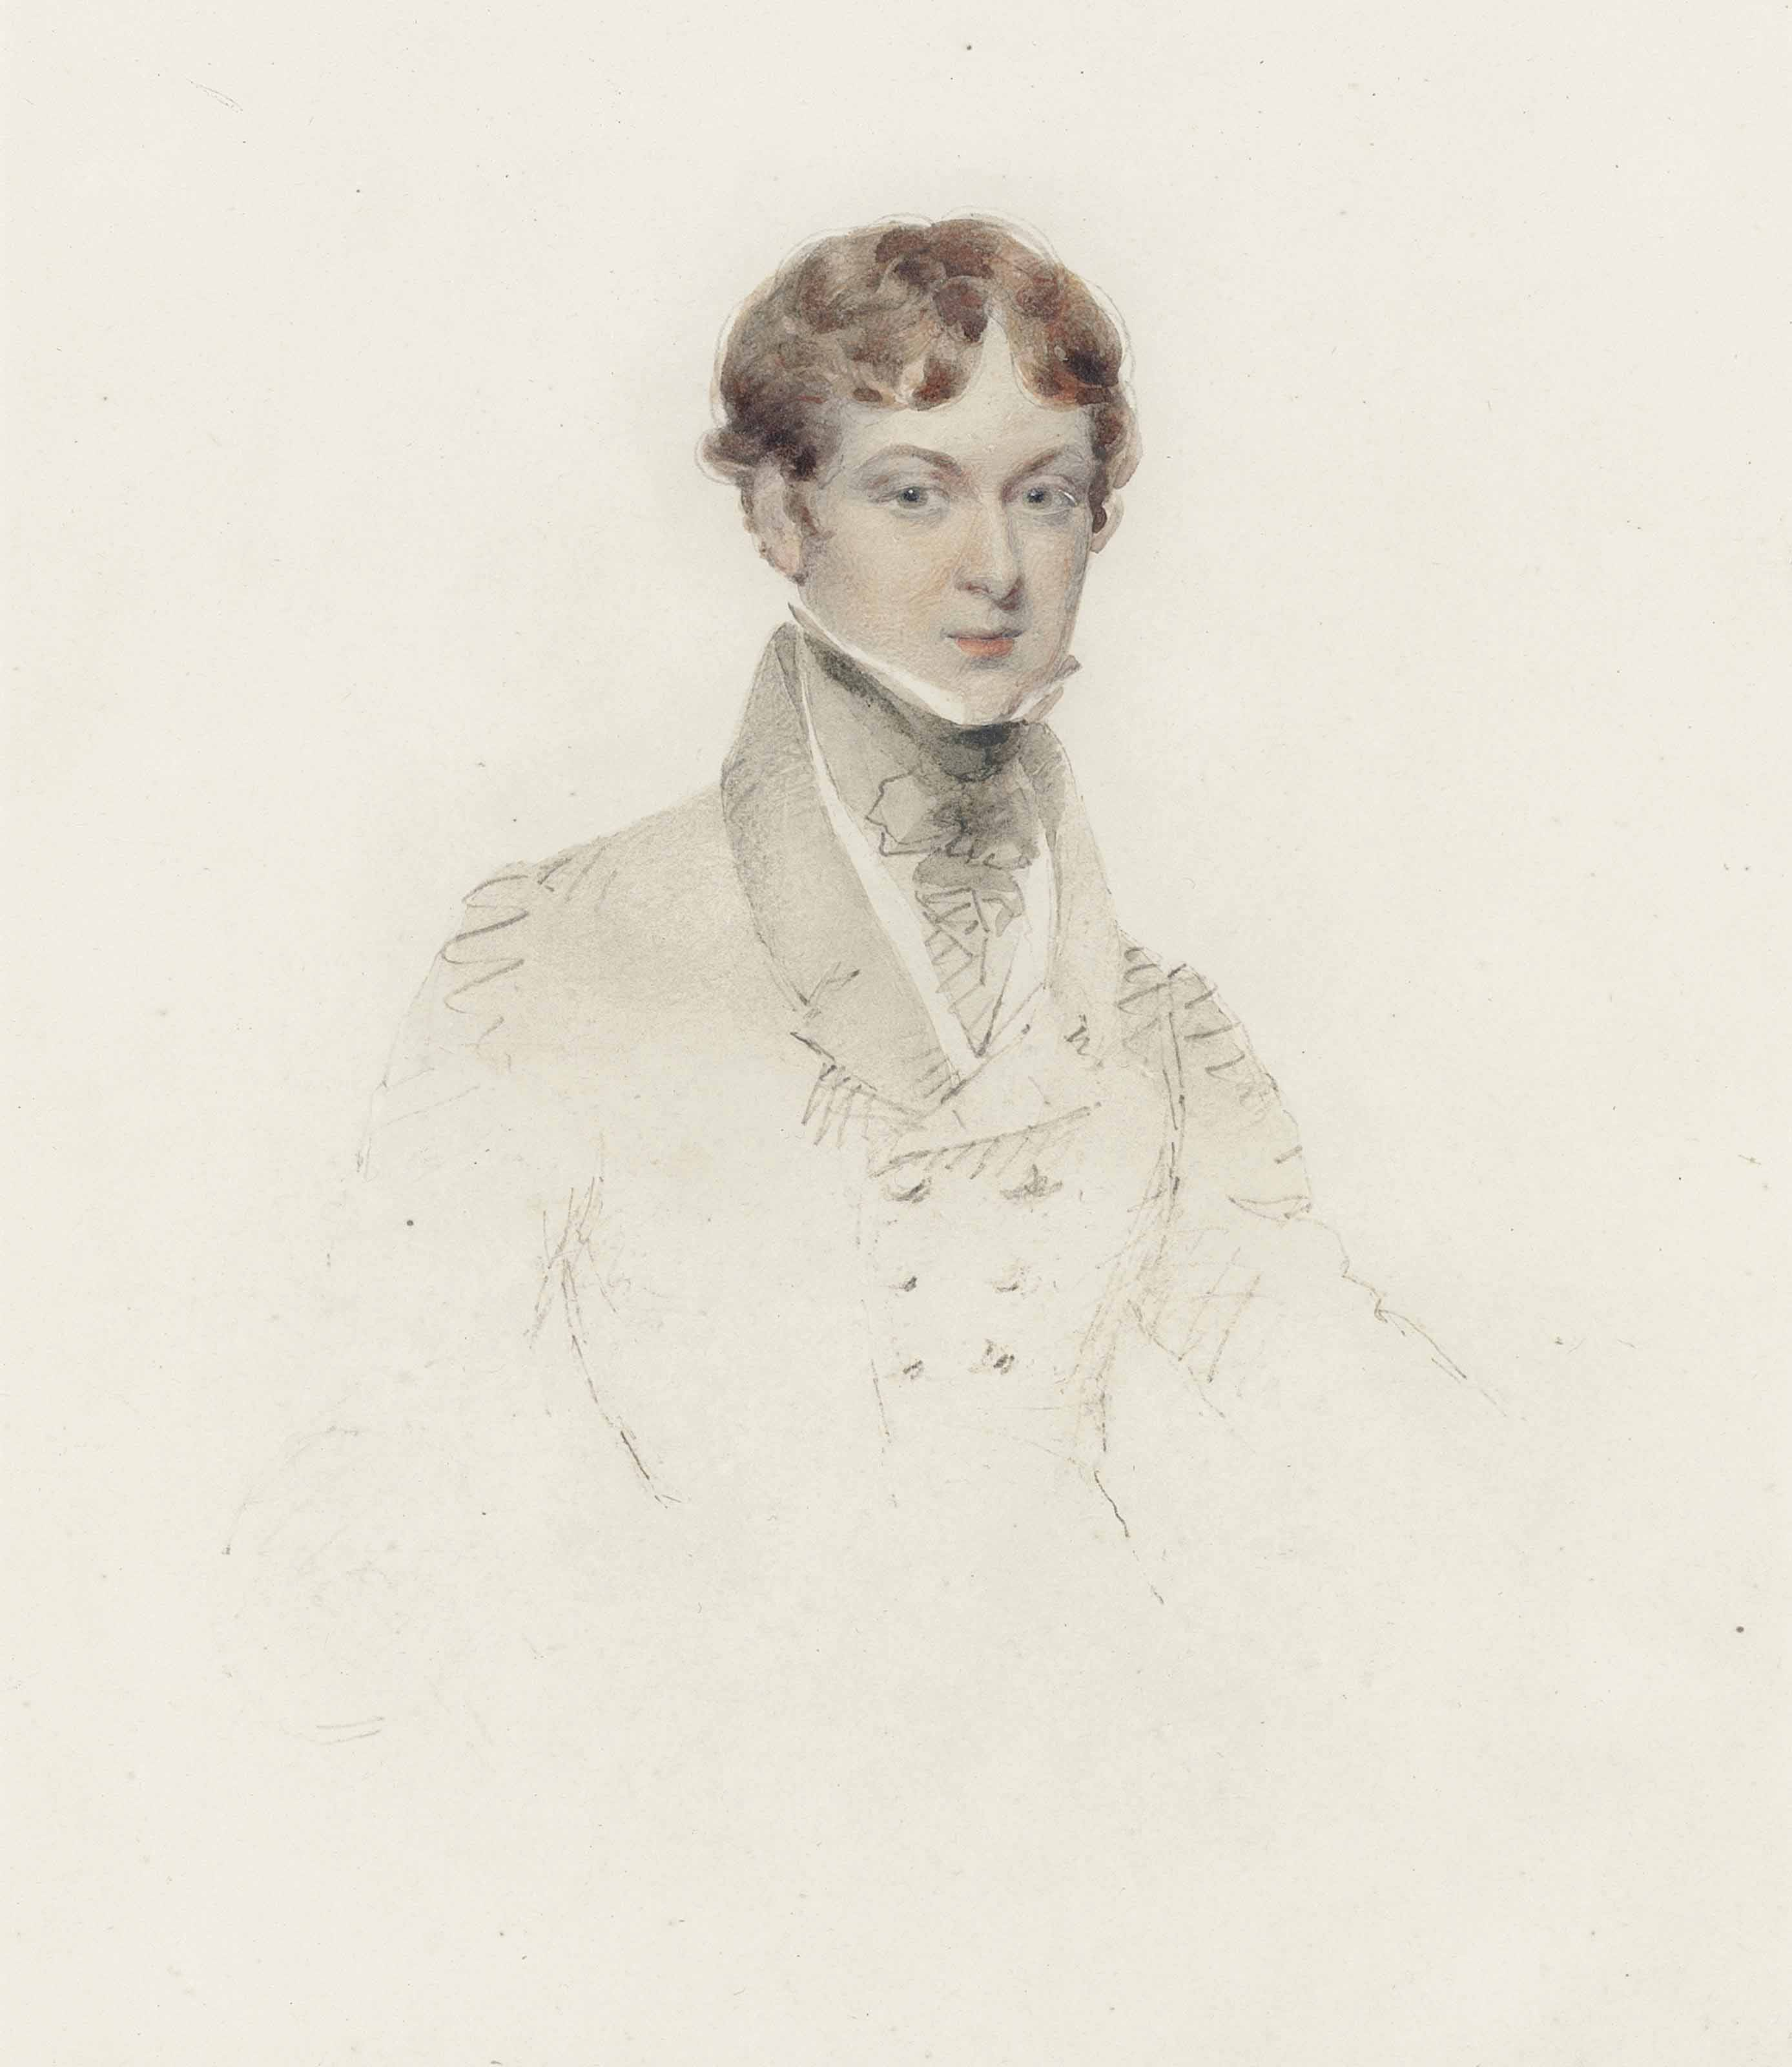 Traditionally identified as a portrait of Charles Dickens as a young man, aged 16, head and shoulders, in a grey coat